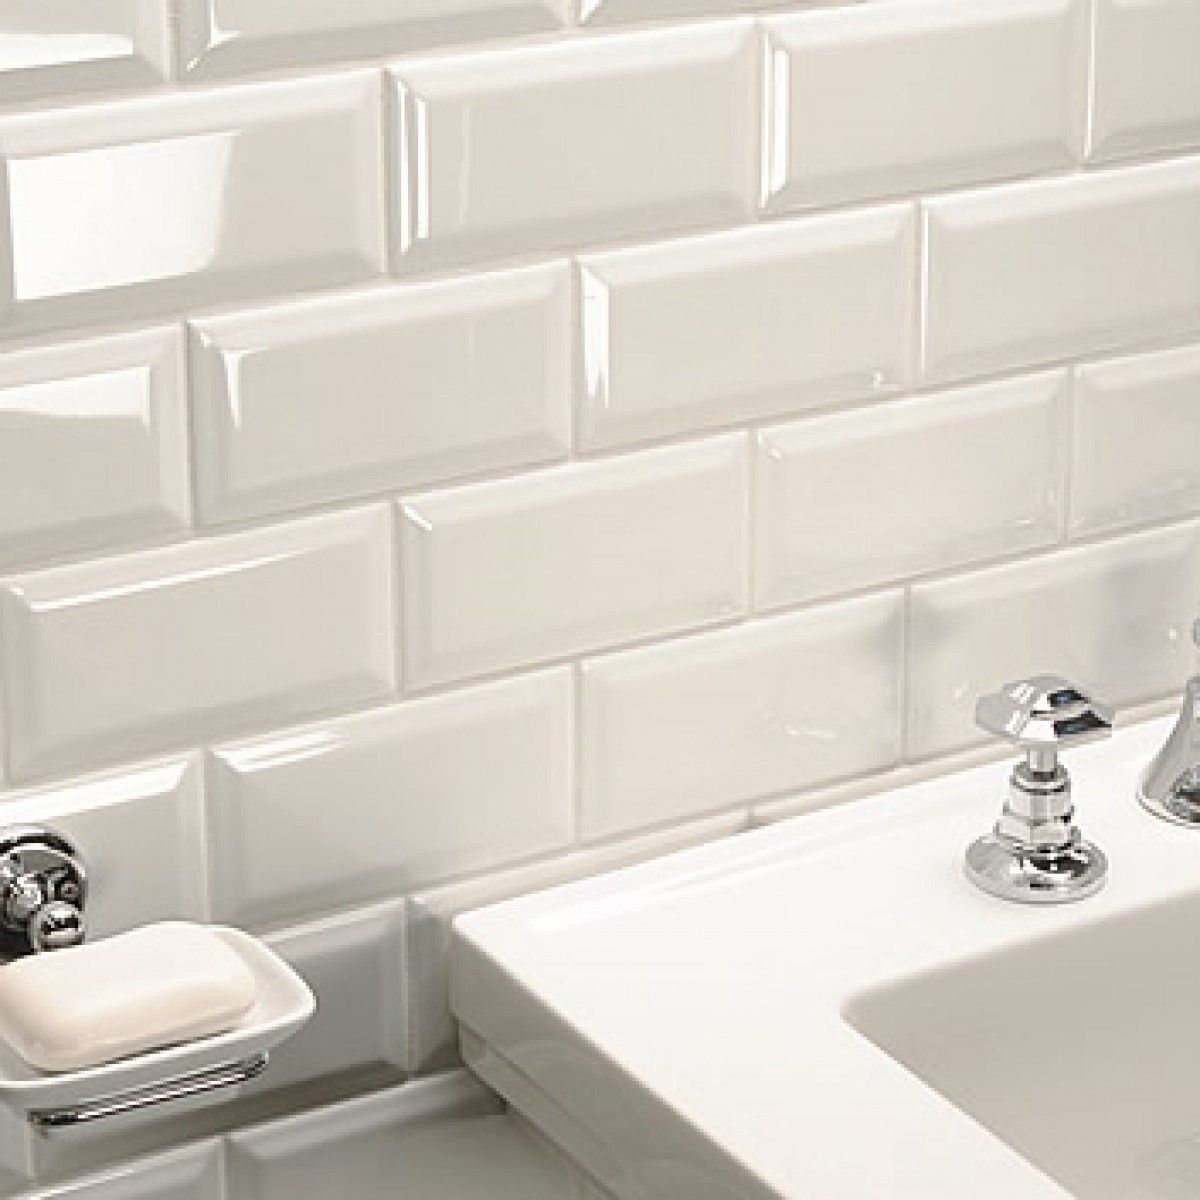 Metro Ivory Wall Tiles 200mm X 100mm Beveled Subway Tile Subway Tile White Beveled Subway Tile